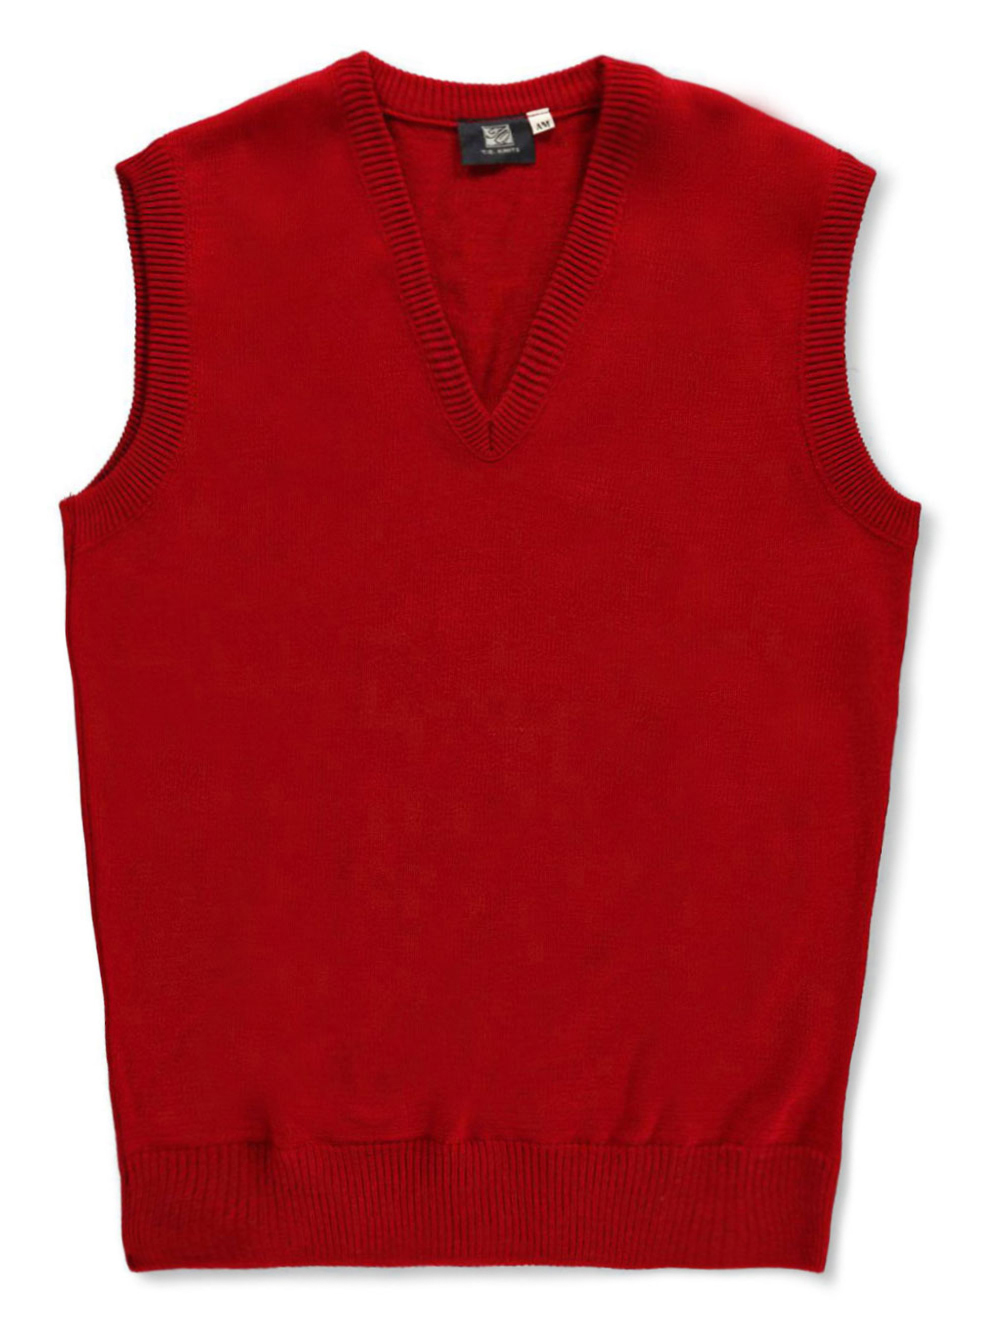 Image of T.Q. Knits Unisex Sweater Vest Adult Sizes S  XXL  red s